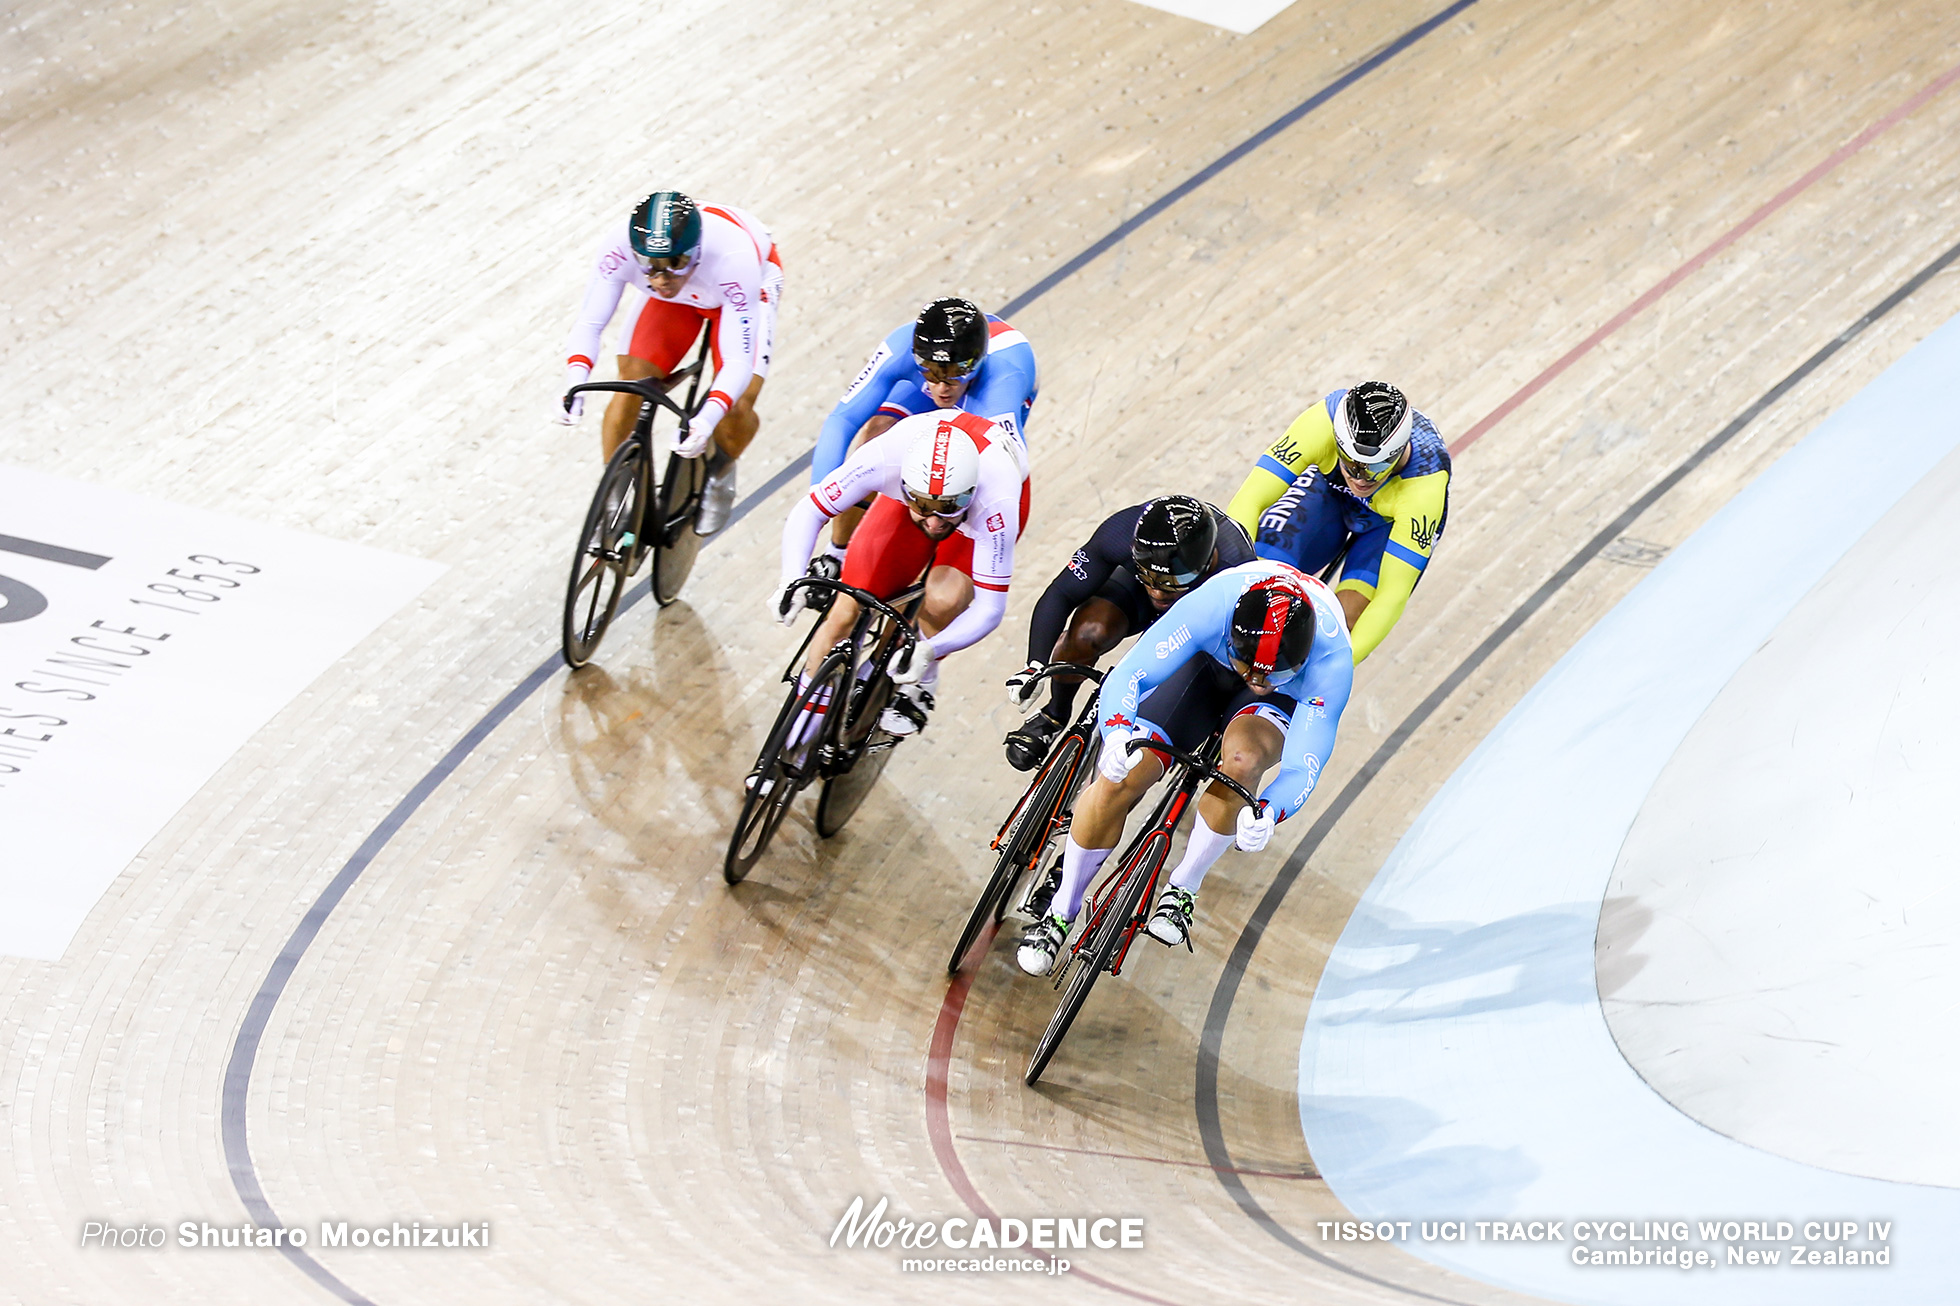 1st Round / Men's Keirin / TISSOT UCI TRACK CYCLING WORLD CUP IV, Cambridge, New Zealand